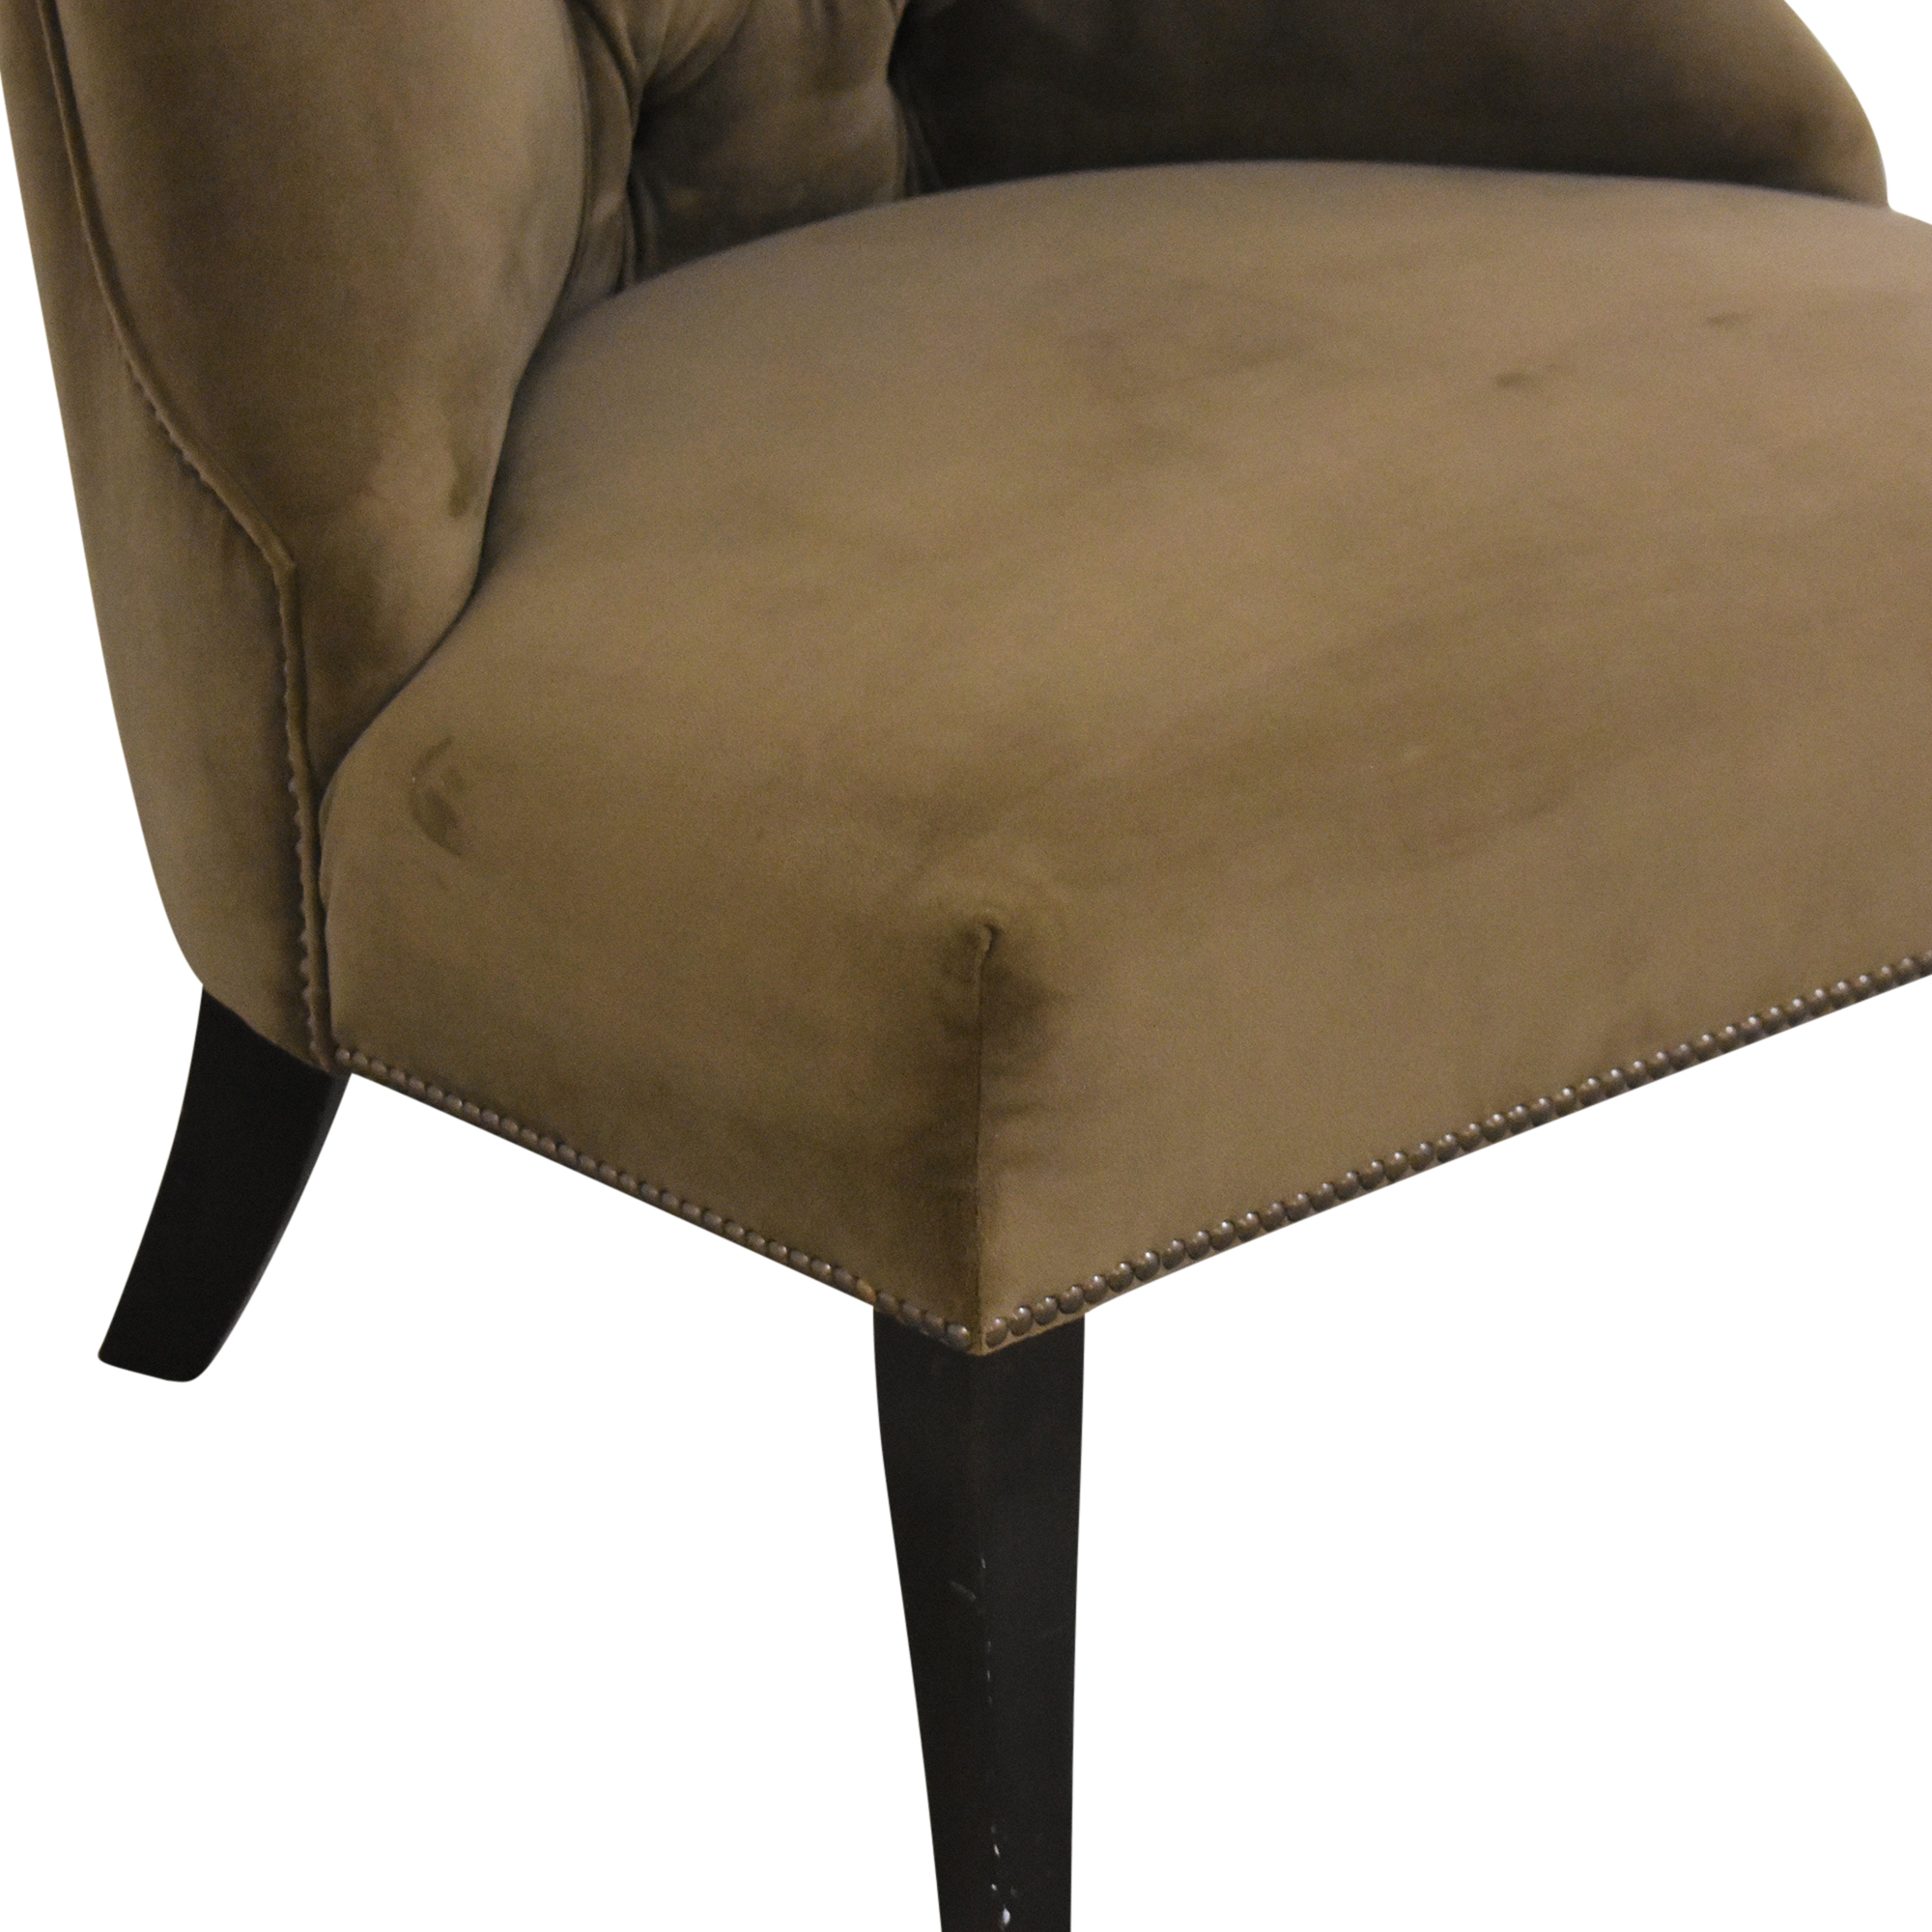 Patagonia Tufted Accent Chair / Chairs